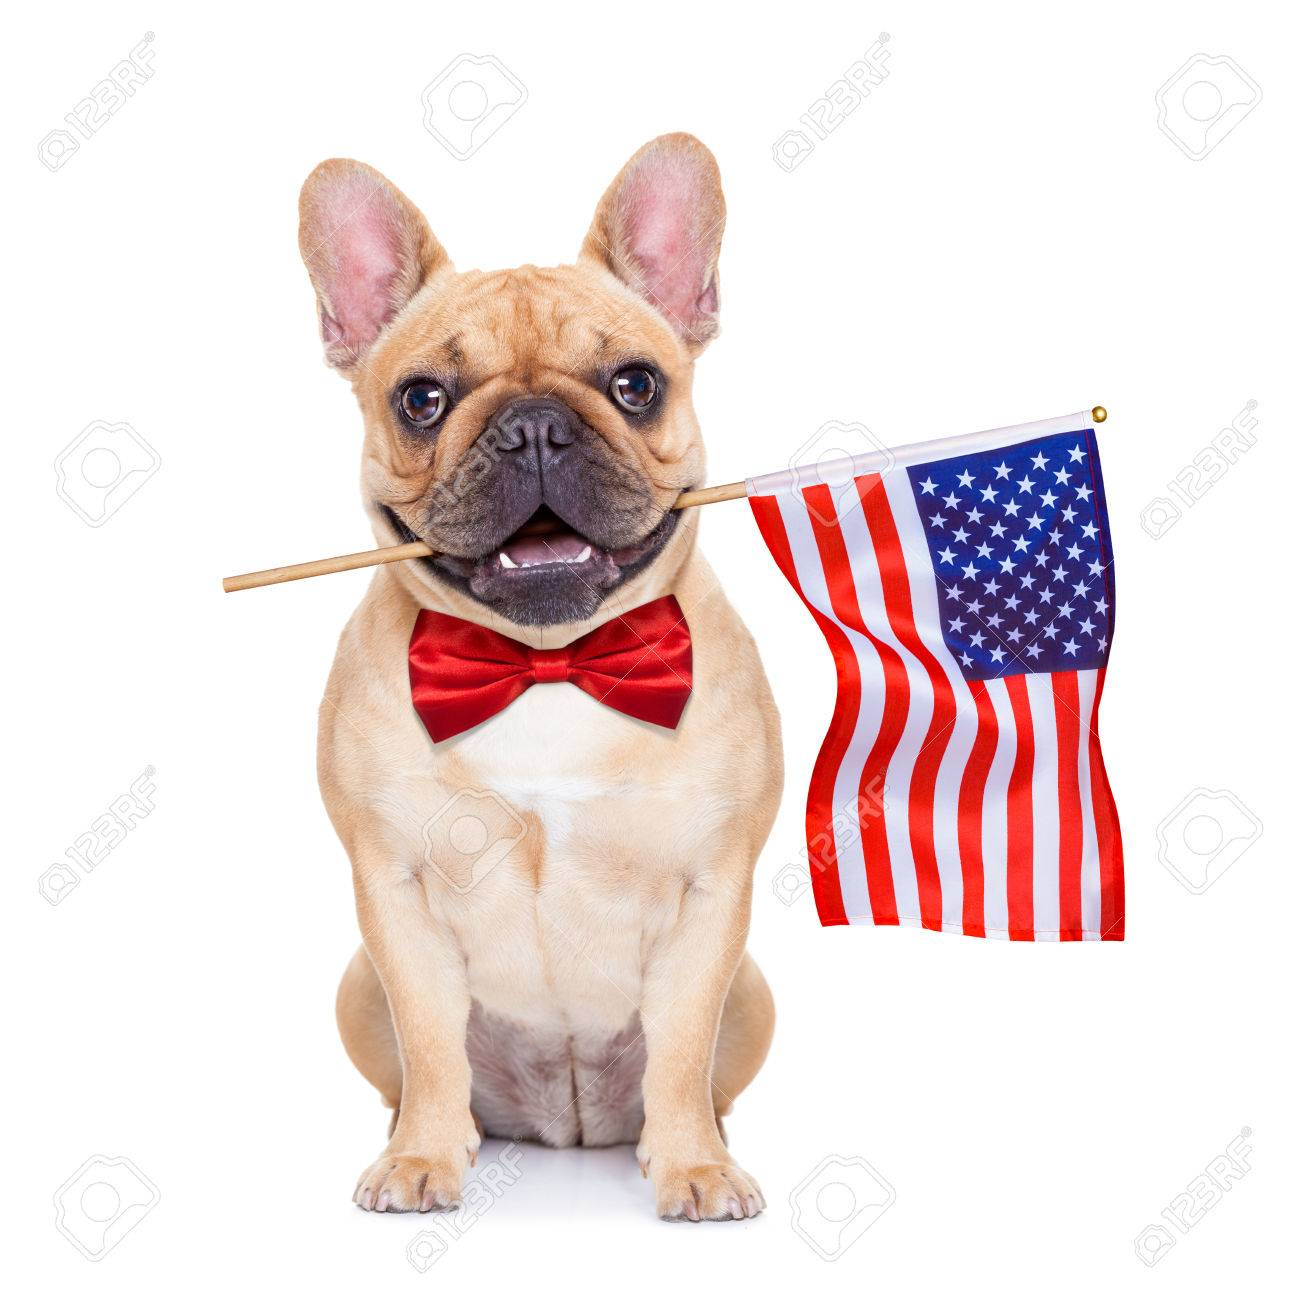 french bulldog  holding a flag of usa on independence day on 4th  of july Stock Photo - 41039310